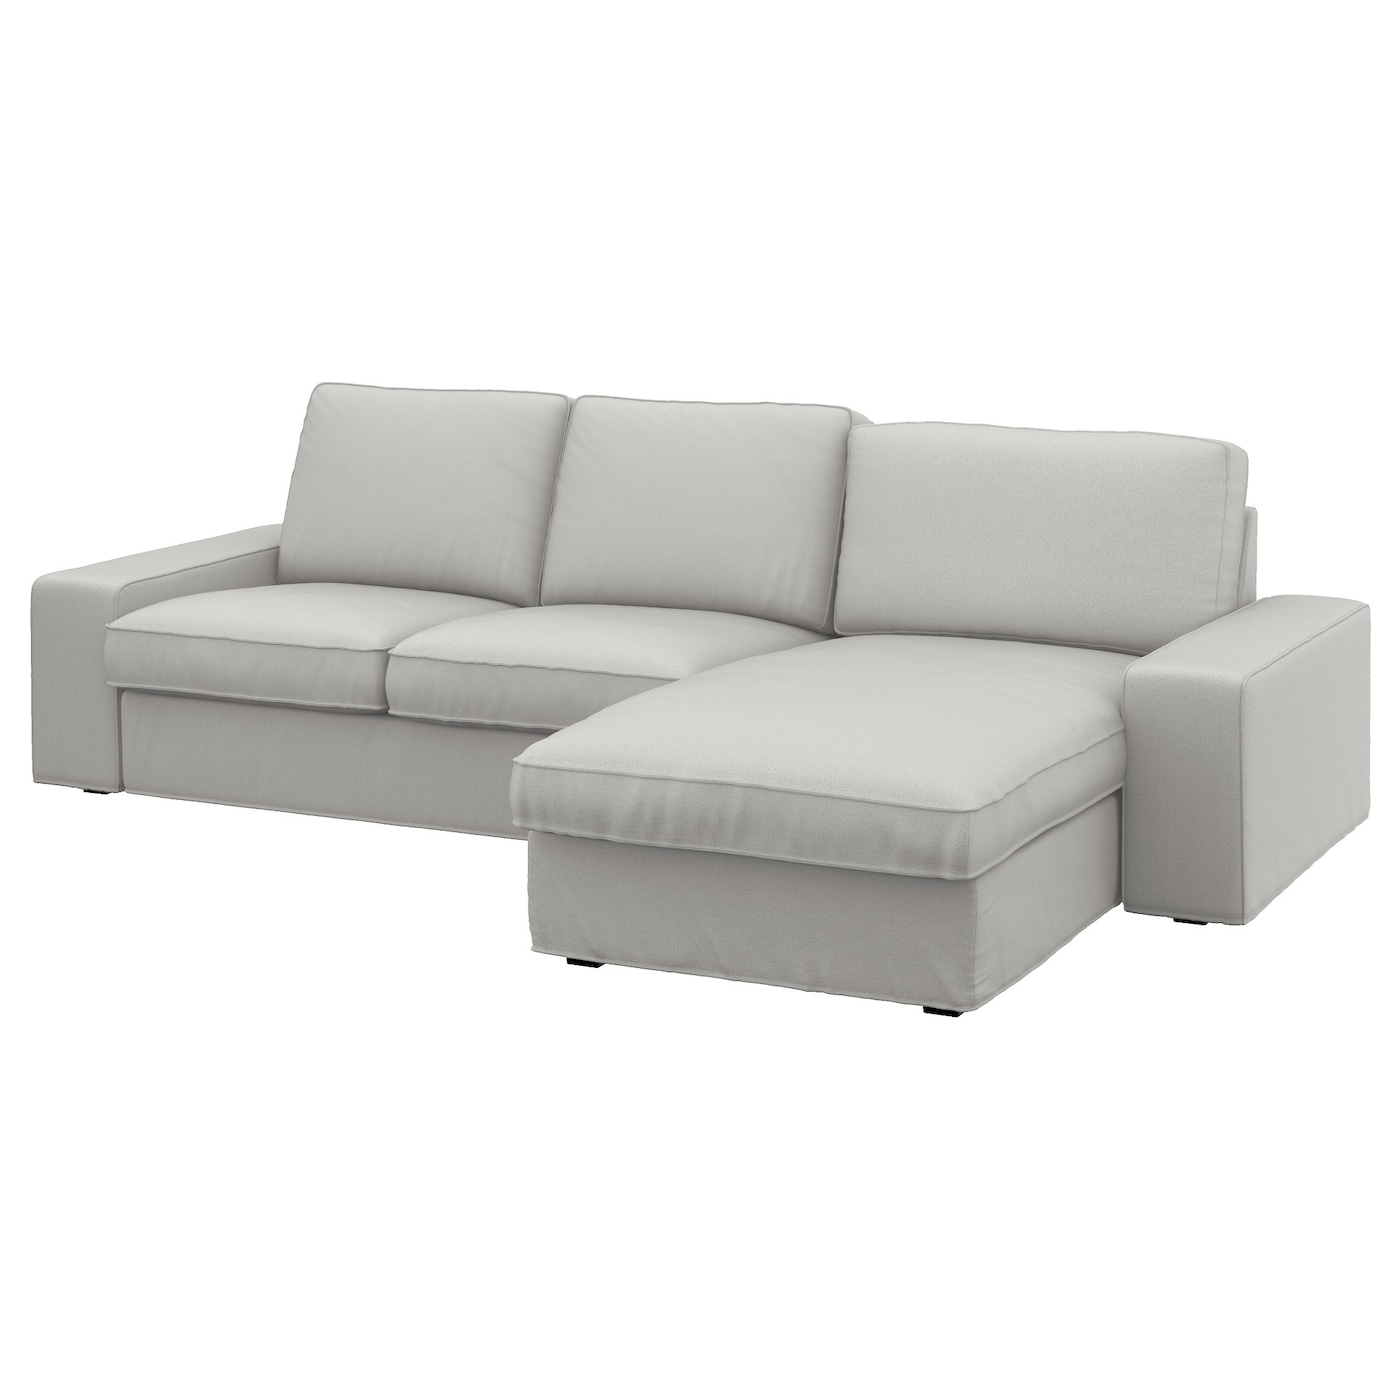 Tremendous 3 Seat Sofa Kivik Ramna With Chaise Longue Ramna Light Grey Ibusinesslaw Wood Chair Design Ideas Ibusinesslaworg